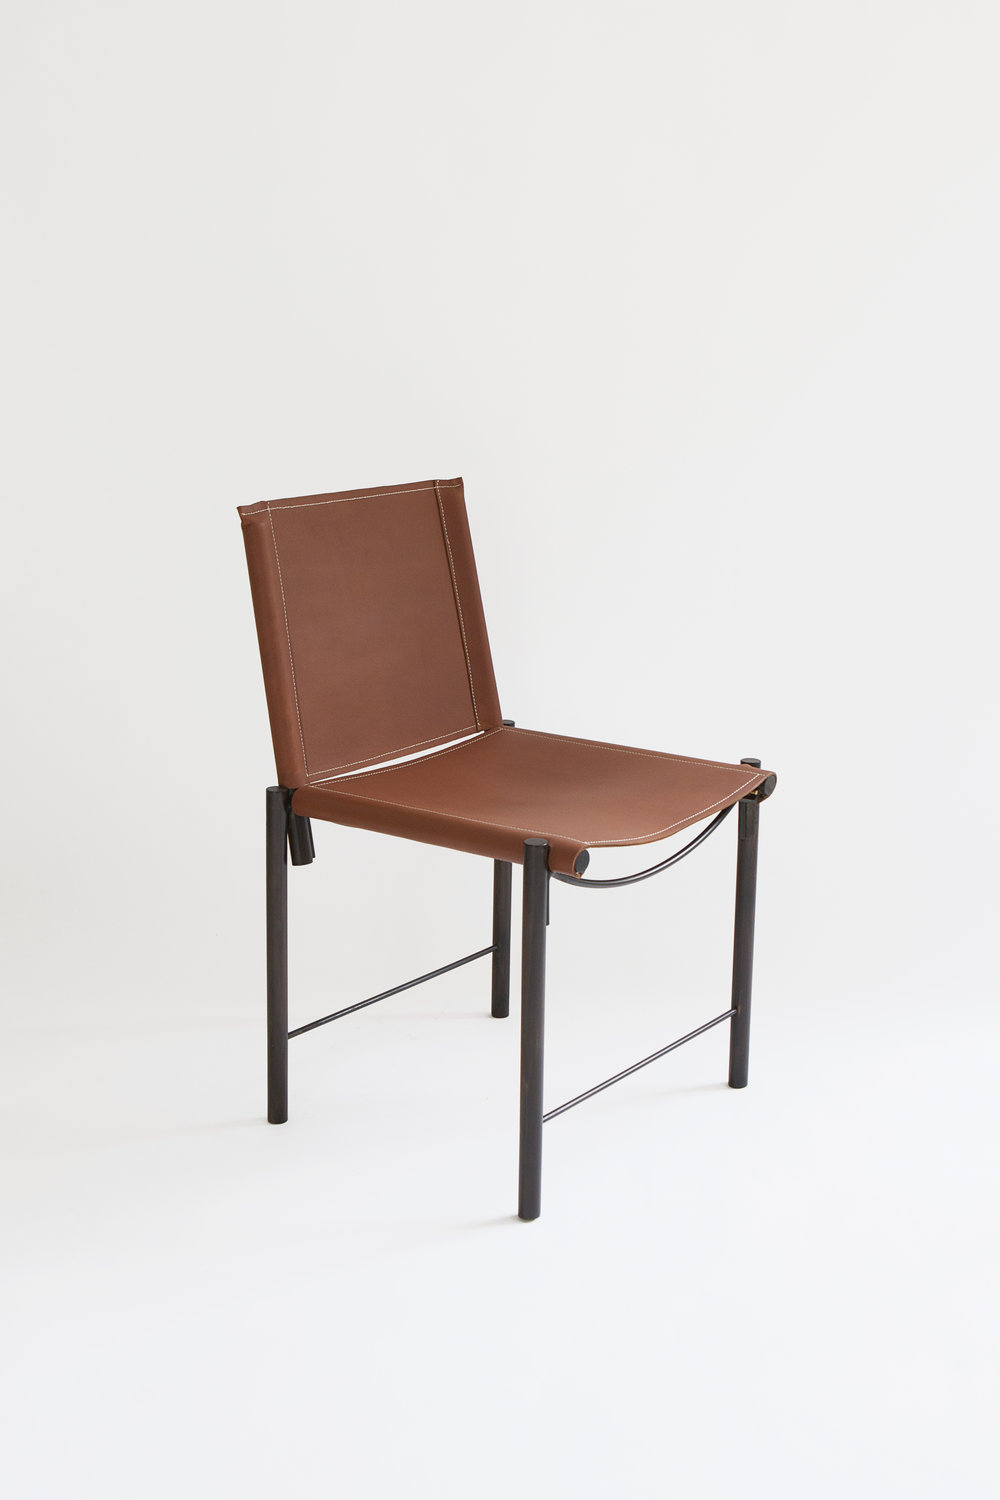 SKStudio_Chair_Brown_Black_Ecomm_Side_colorupdate.jpg